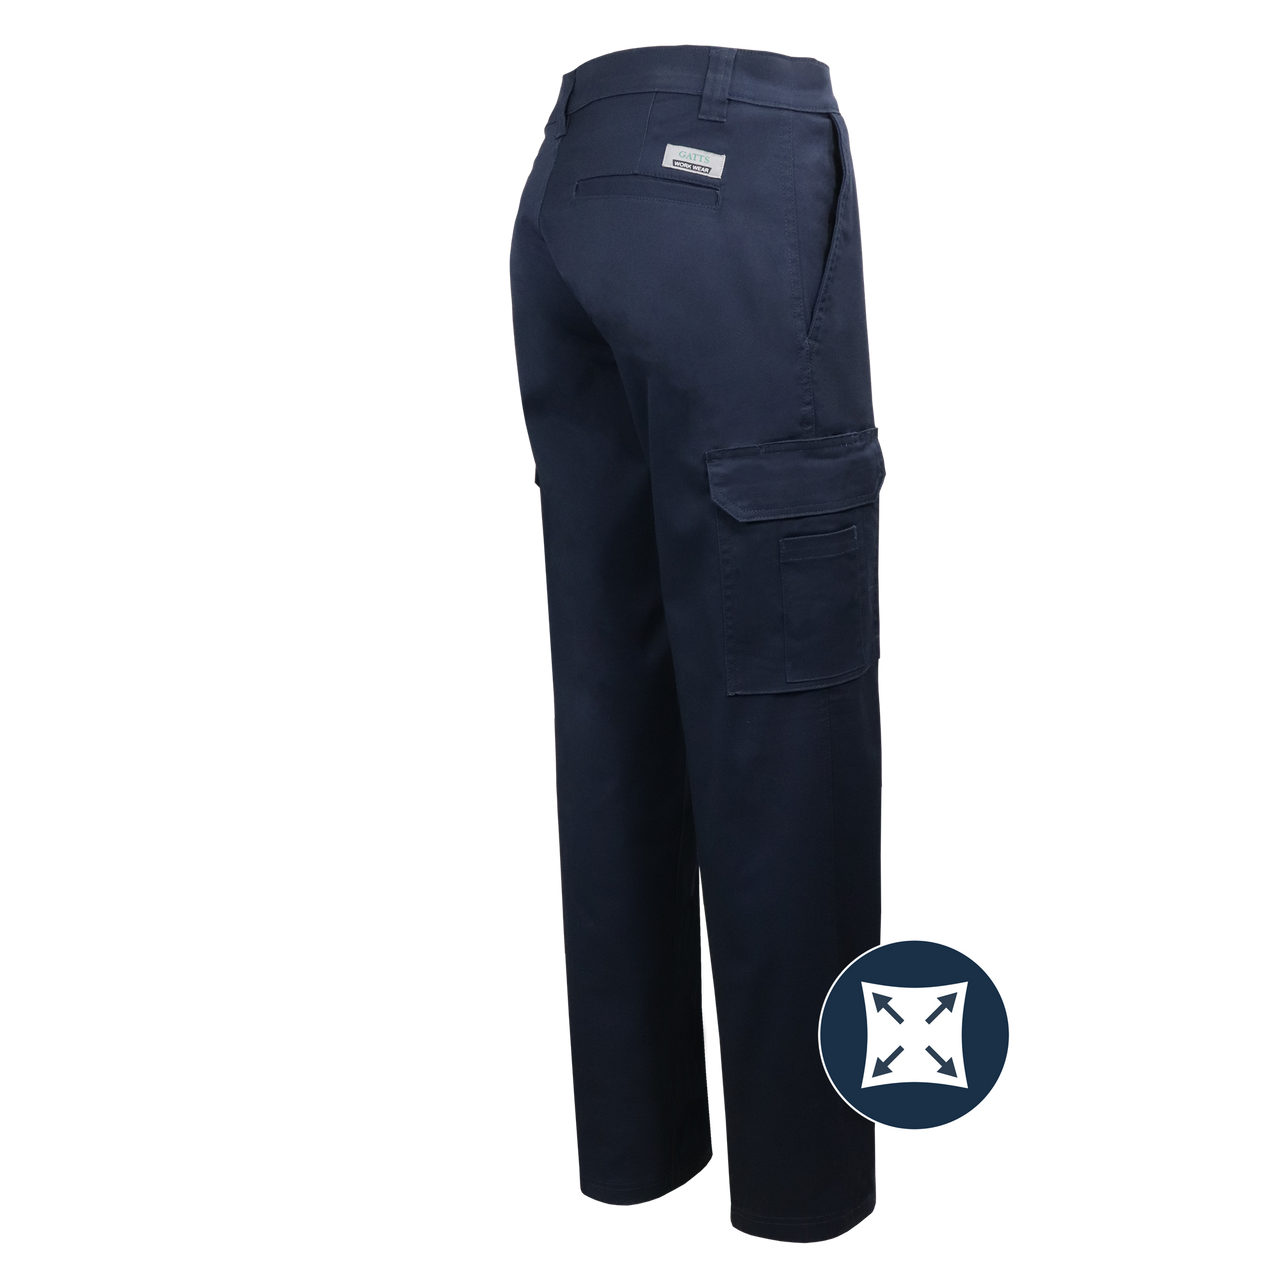 011EX - Pantalon travail cargo extensible||011EX - Workwear Stretch cargo pant